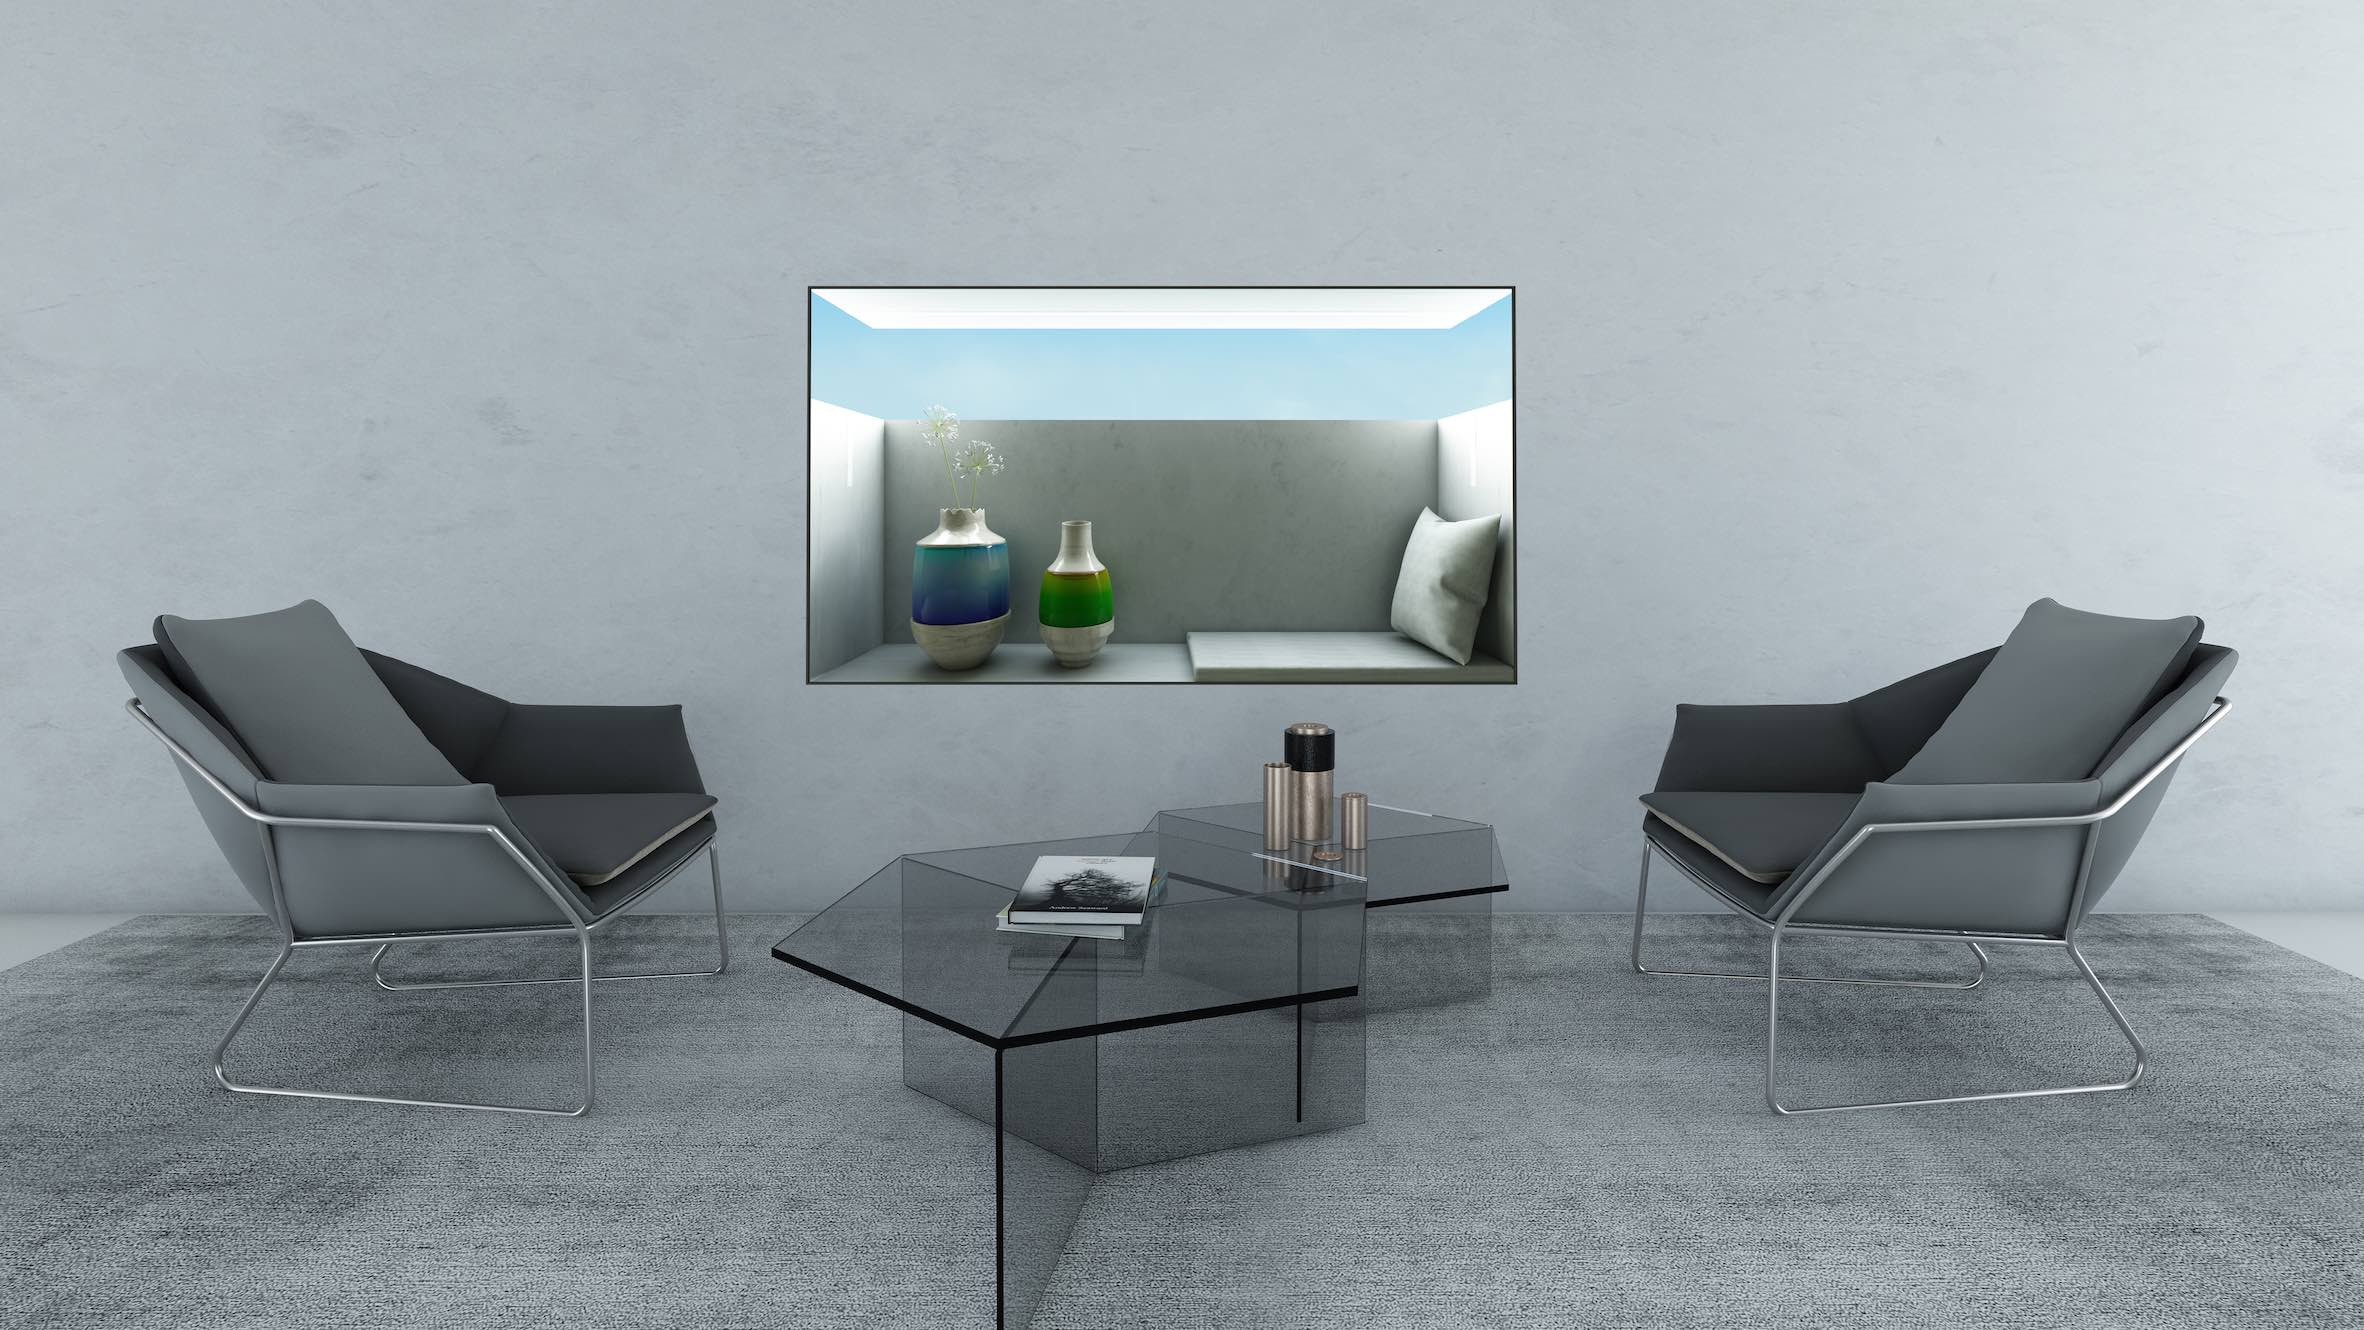 Architectural Extension is on the longlist for the Dezeen x Samsung TV Ambient Mode design competition